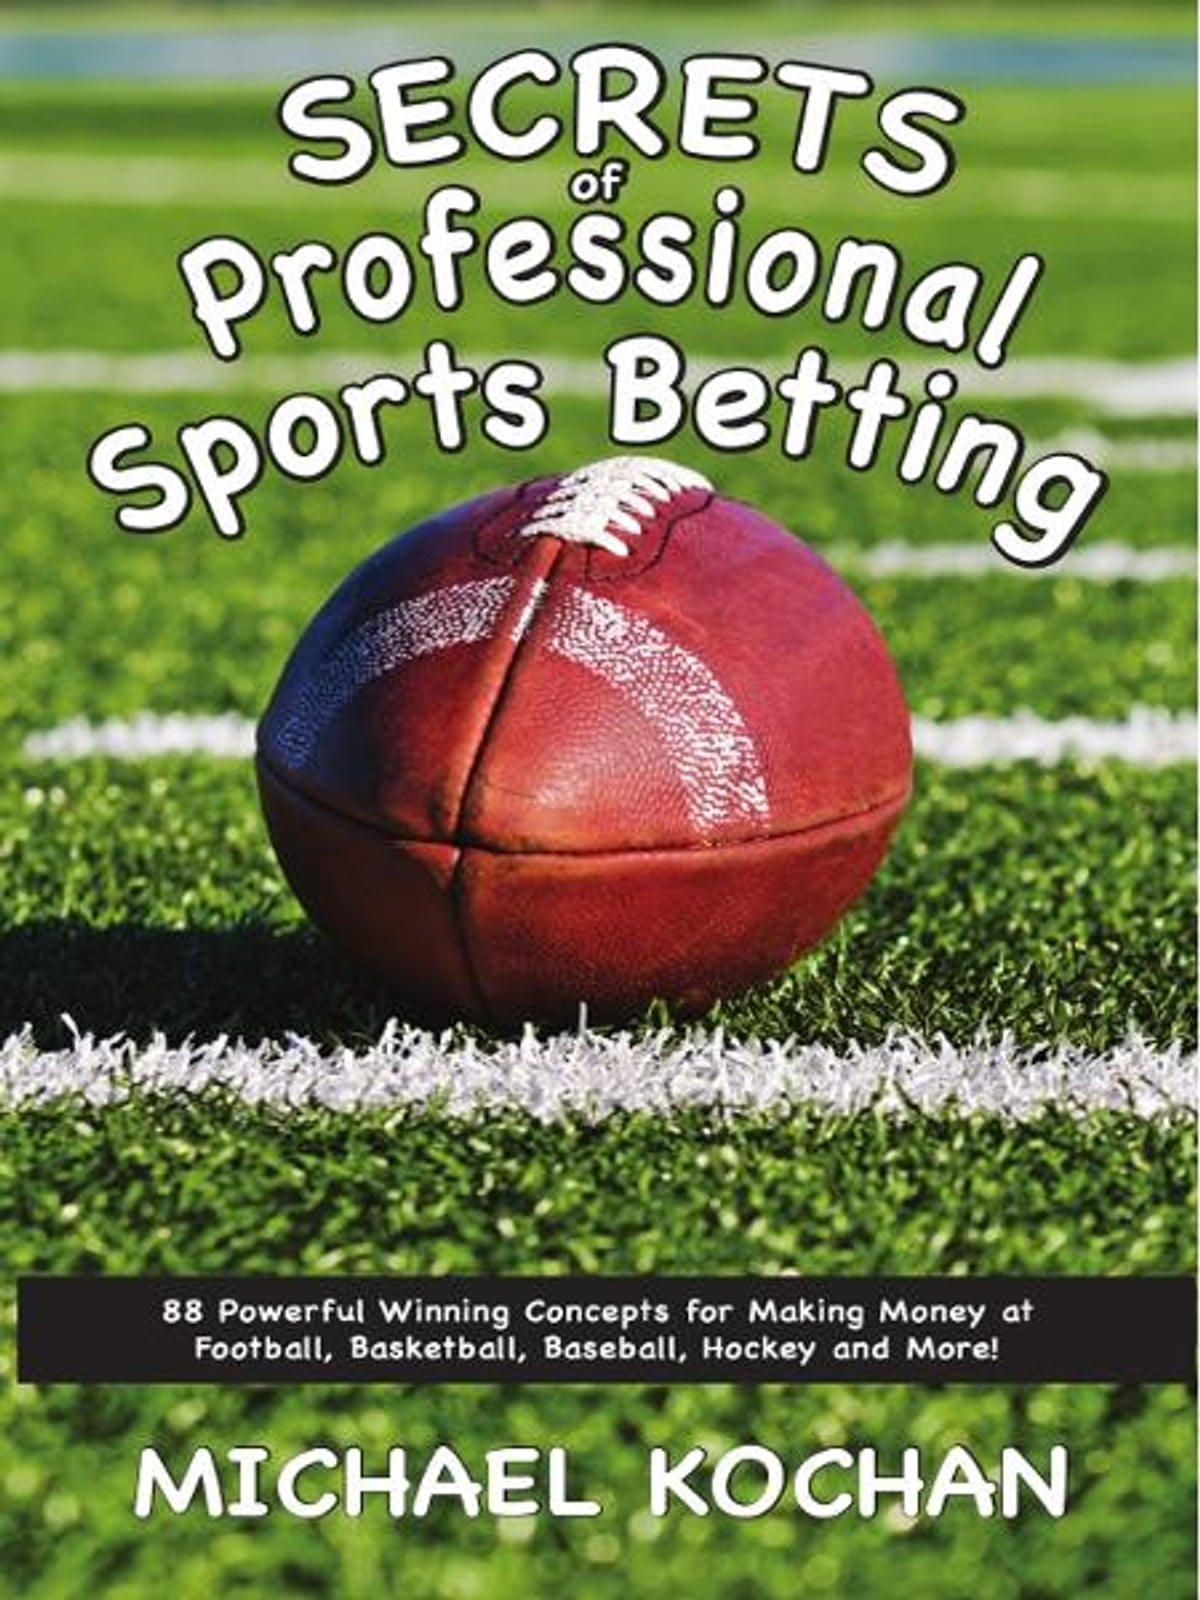 Professional sports betting books online bettinger grimod rethel jacket